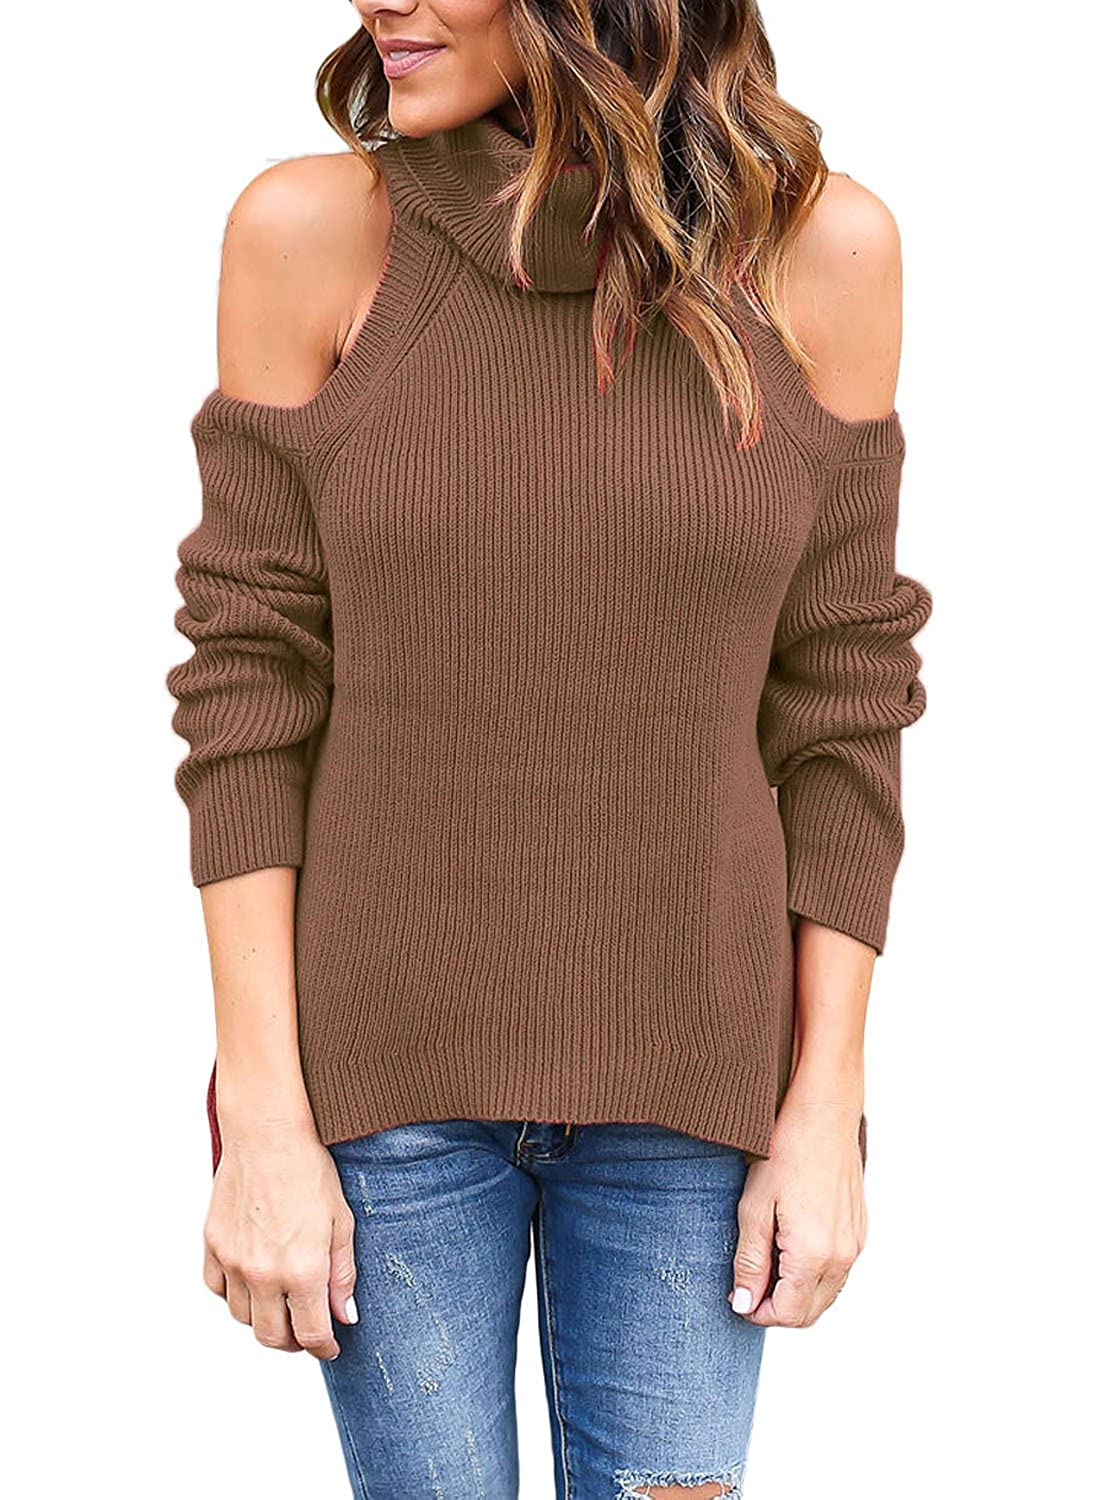 Dearlovers Women High Neck Cold Open Shoulder Loose Knitted Pullover Sweater Top